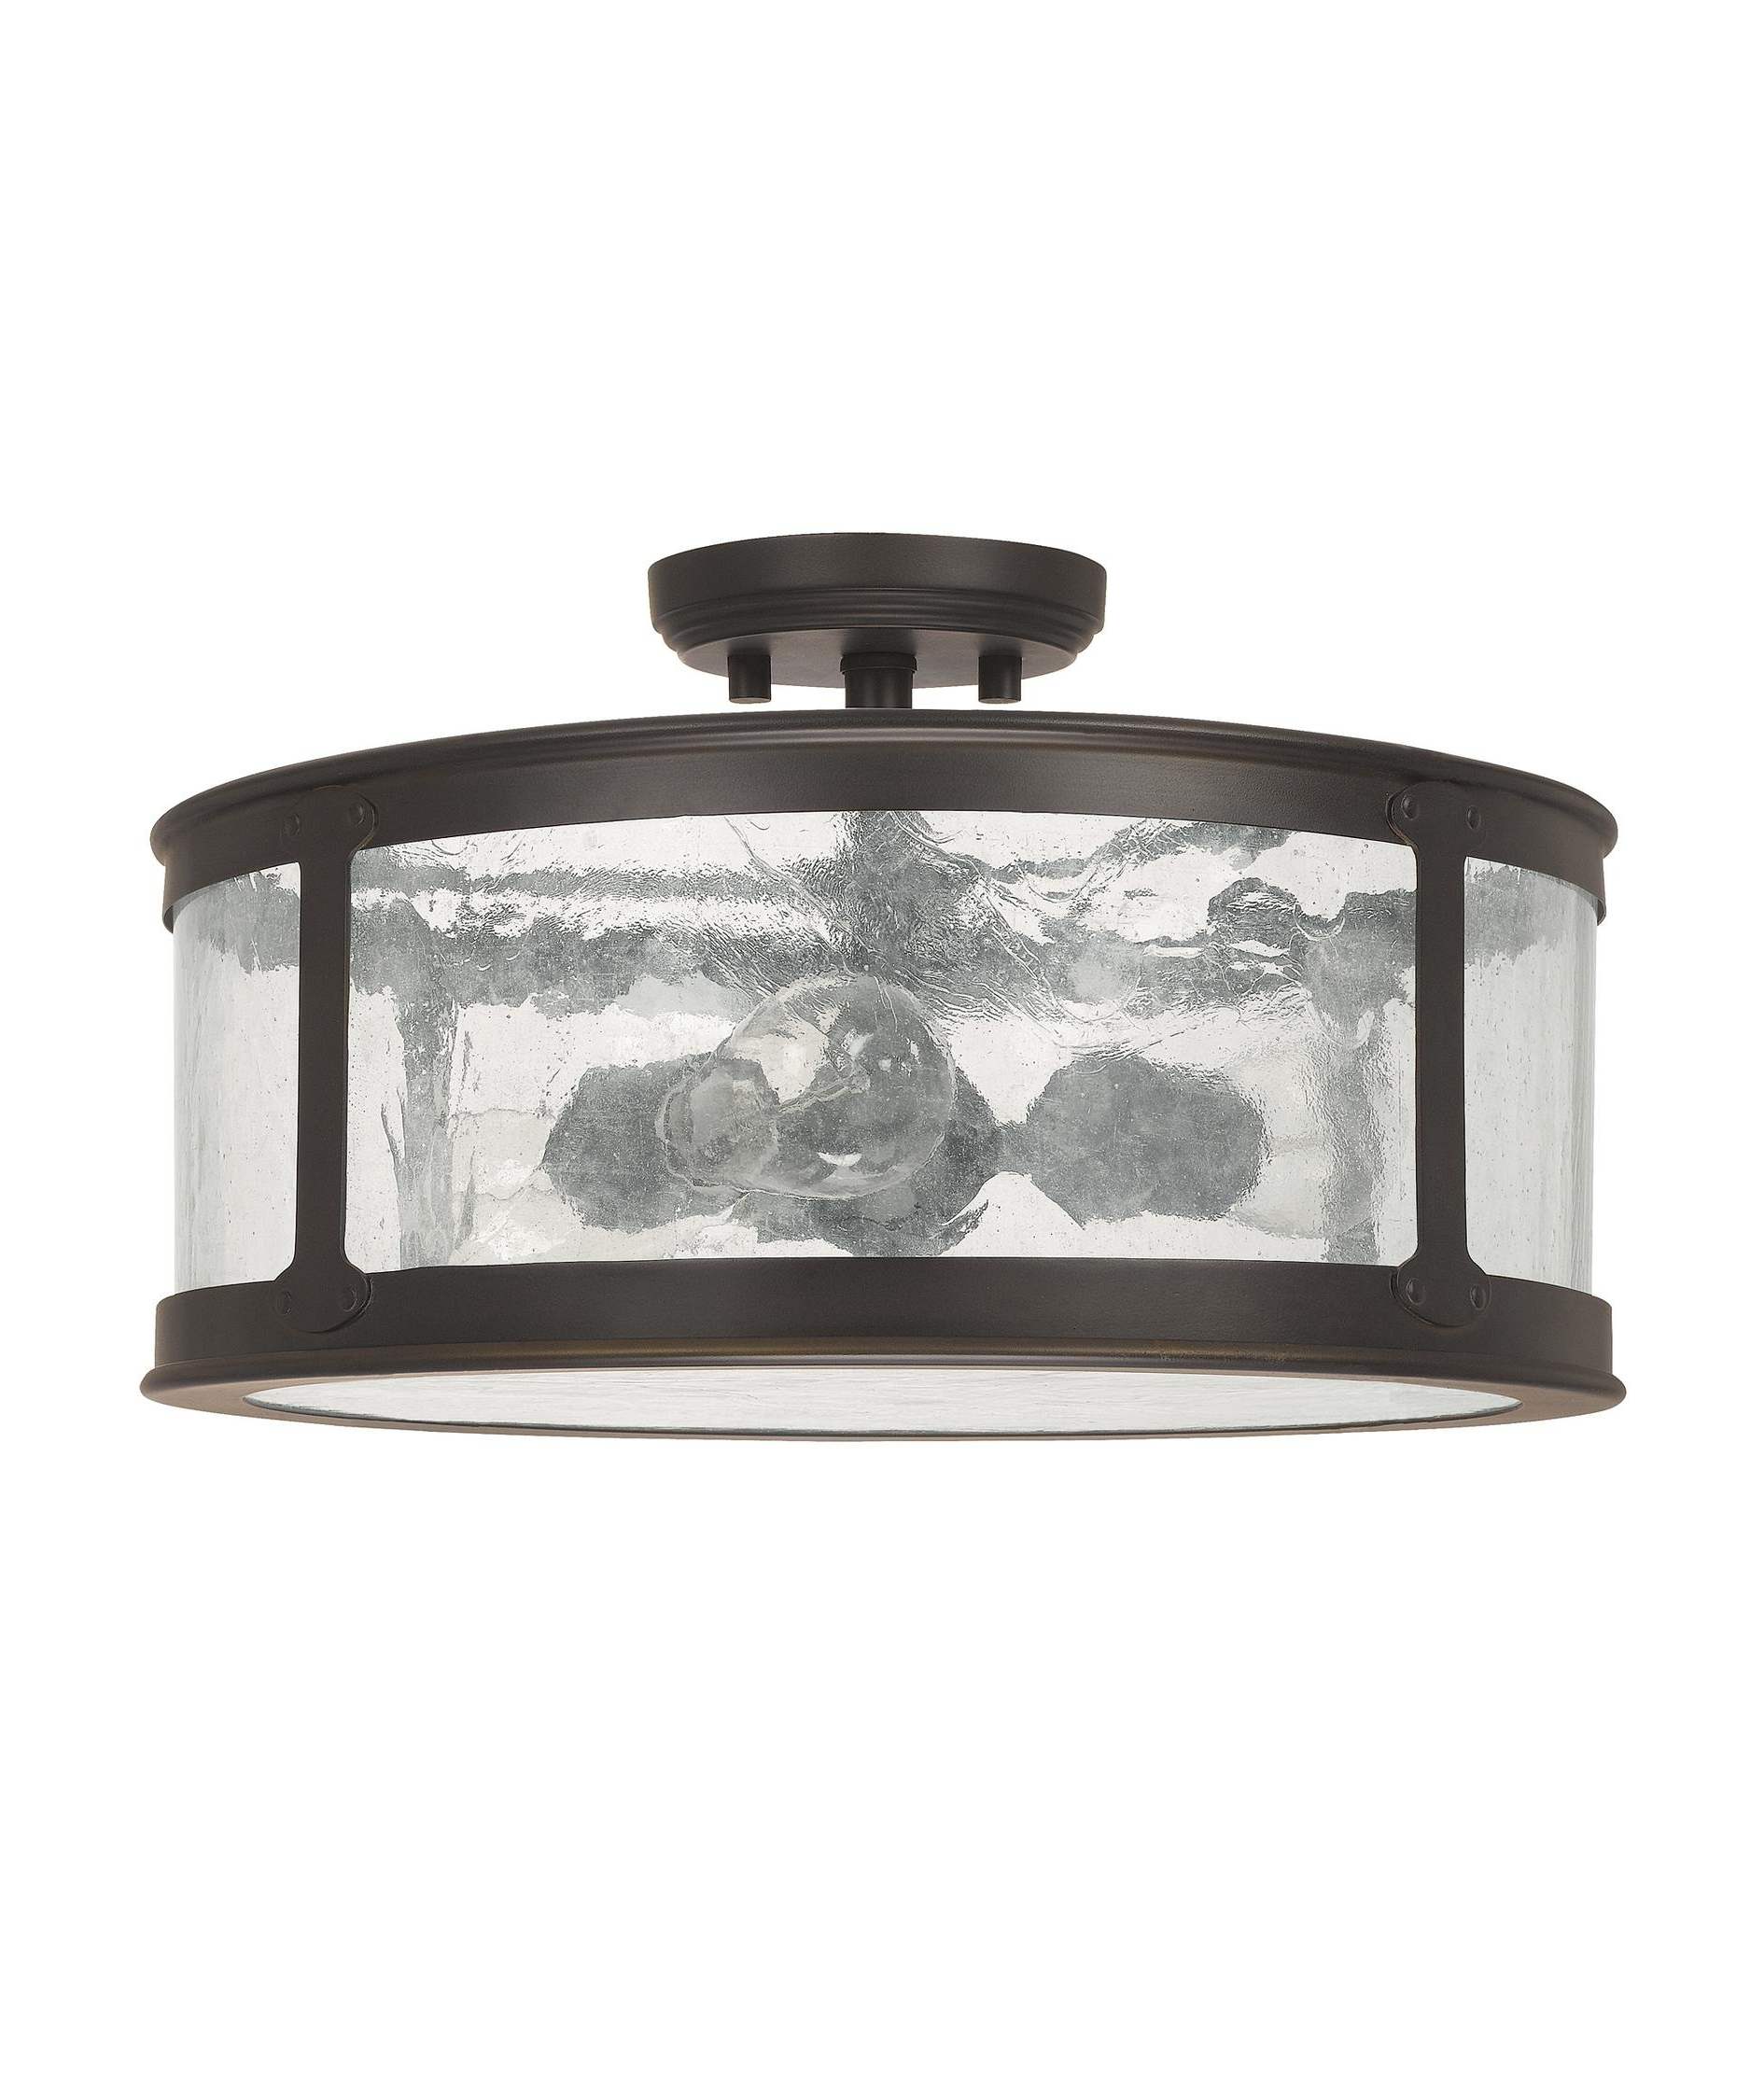 2018 Outdoor Ceiling Lighting Fixtures Regarding Capital Lighting 9567 Dylan 16 Inch Wide 3 Light Outdoor Flush Mount (View 2 of 20)